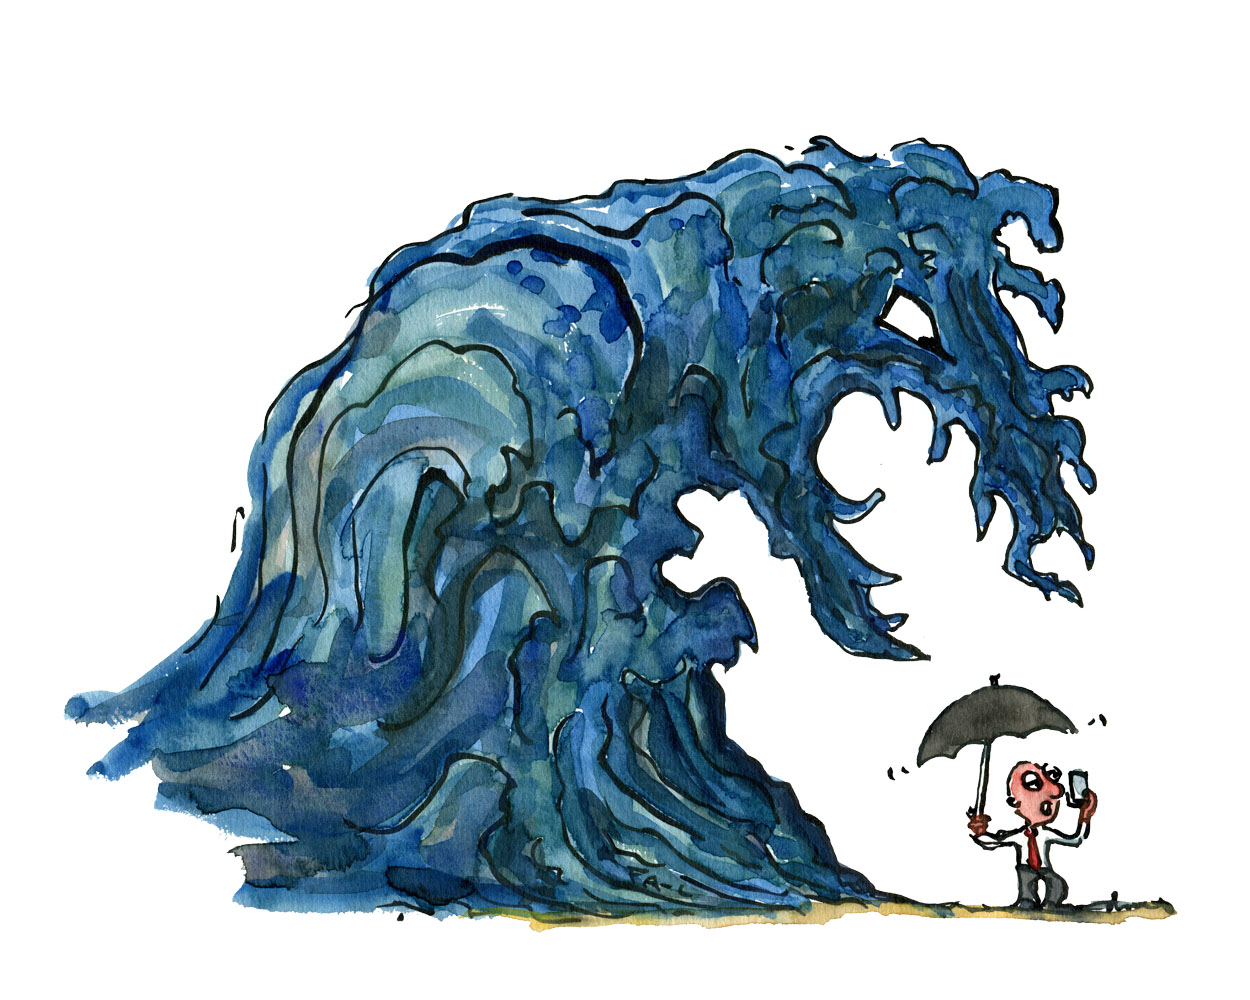 Huge wave approaching a business man on his phone with an umbrella to face the unexpected. Illustration by Frits Ahlefeldt